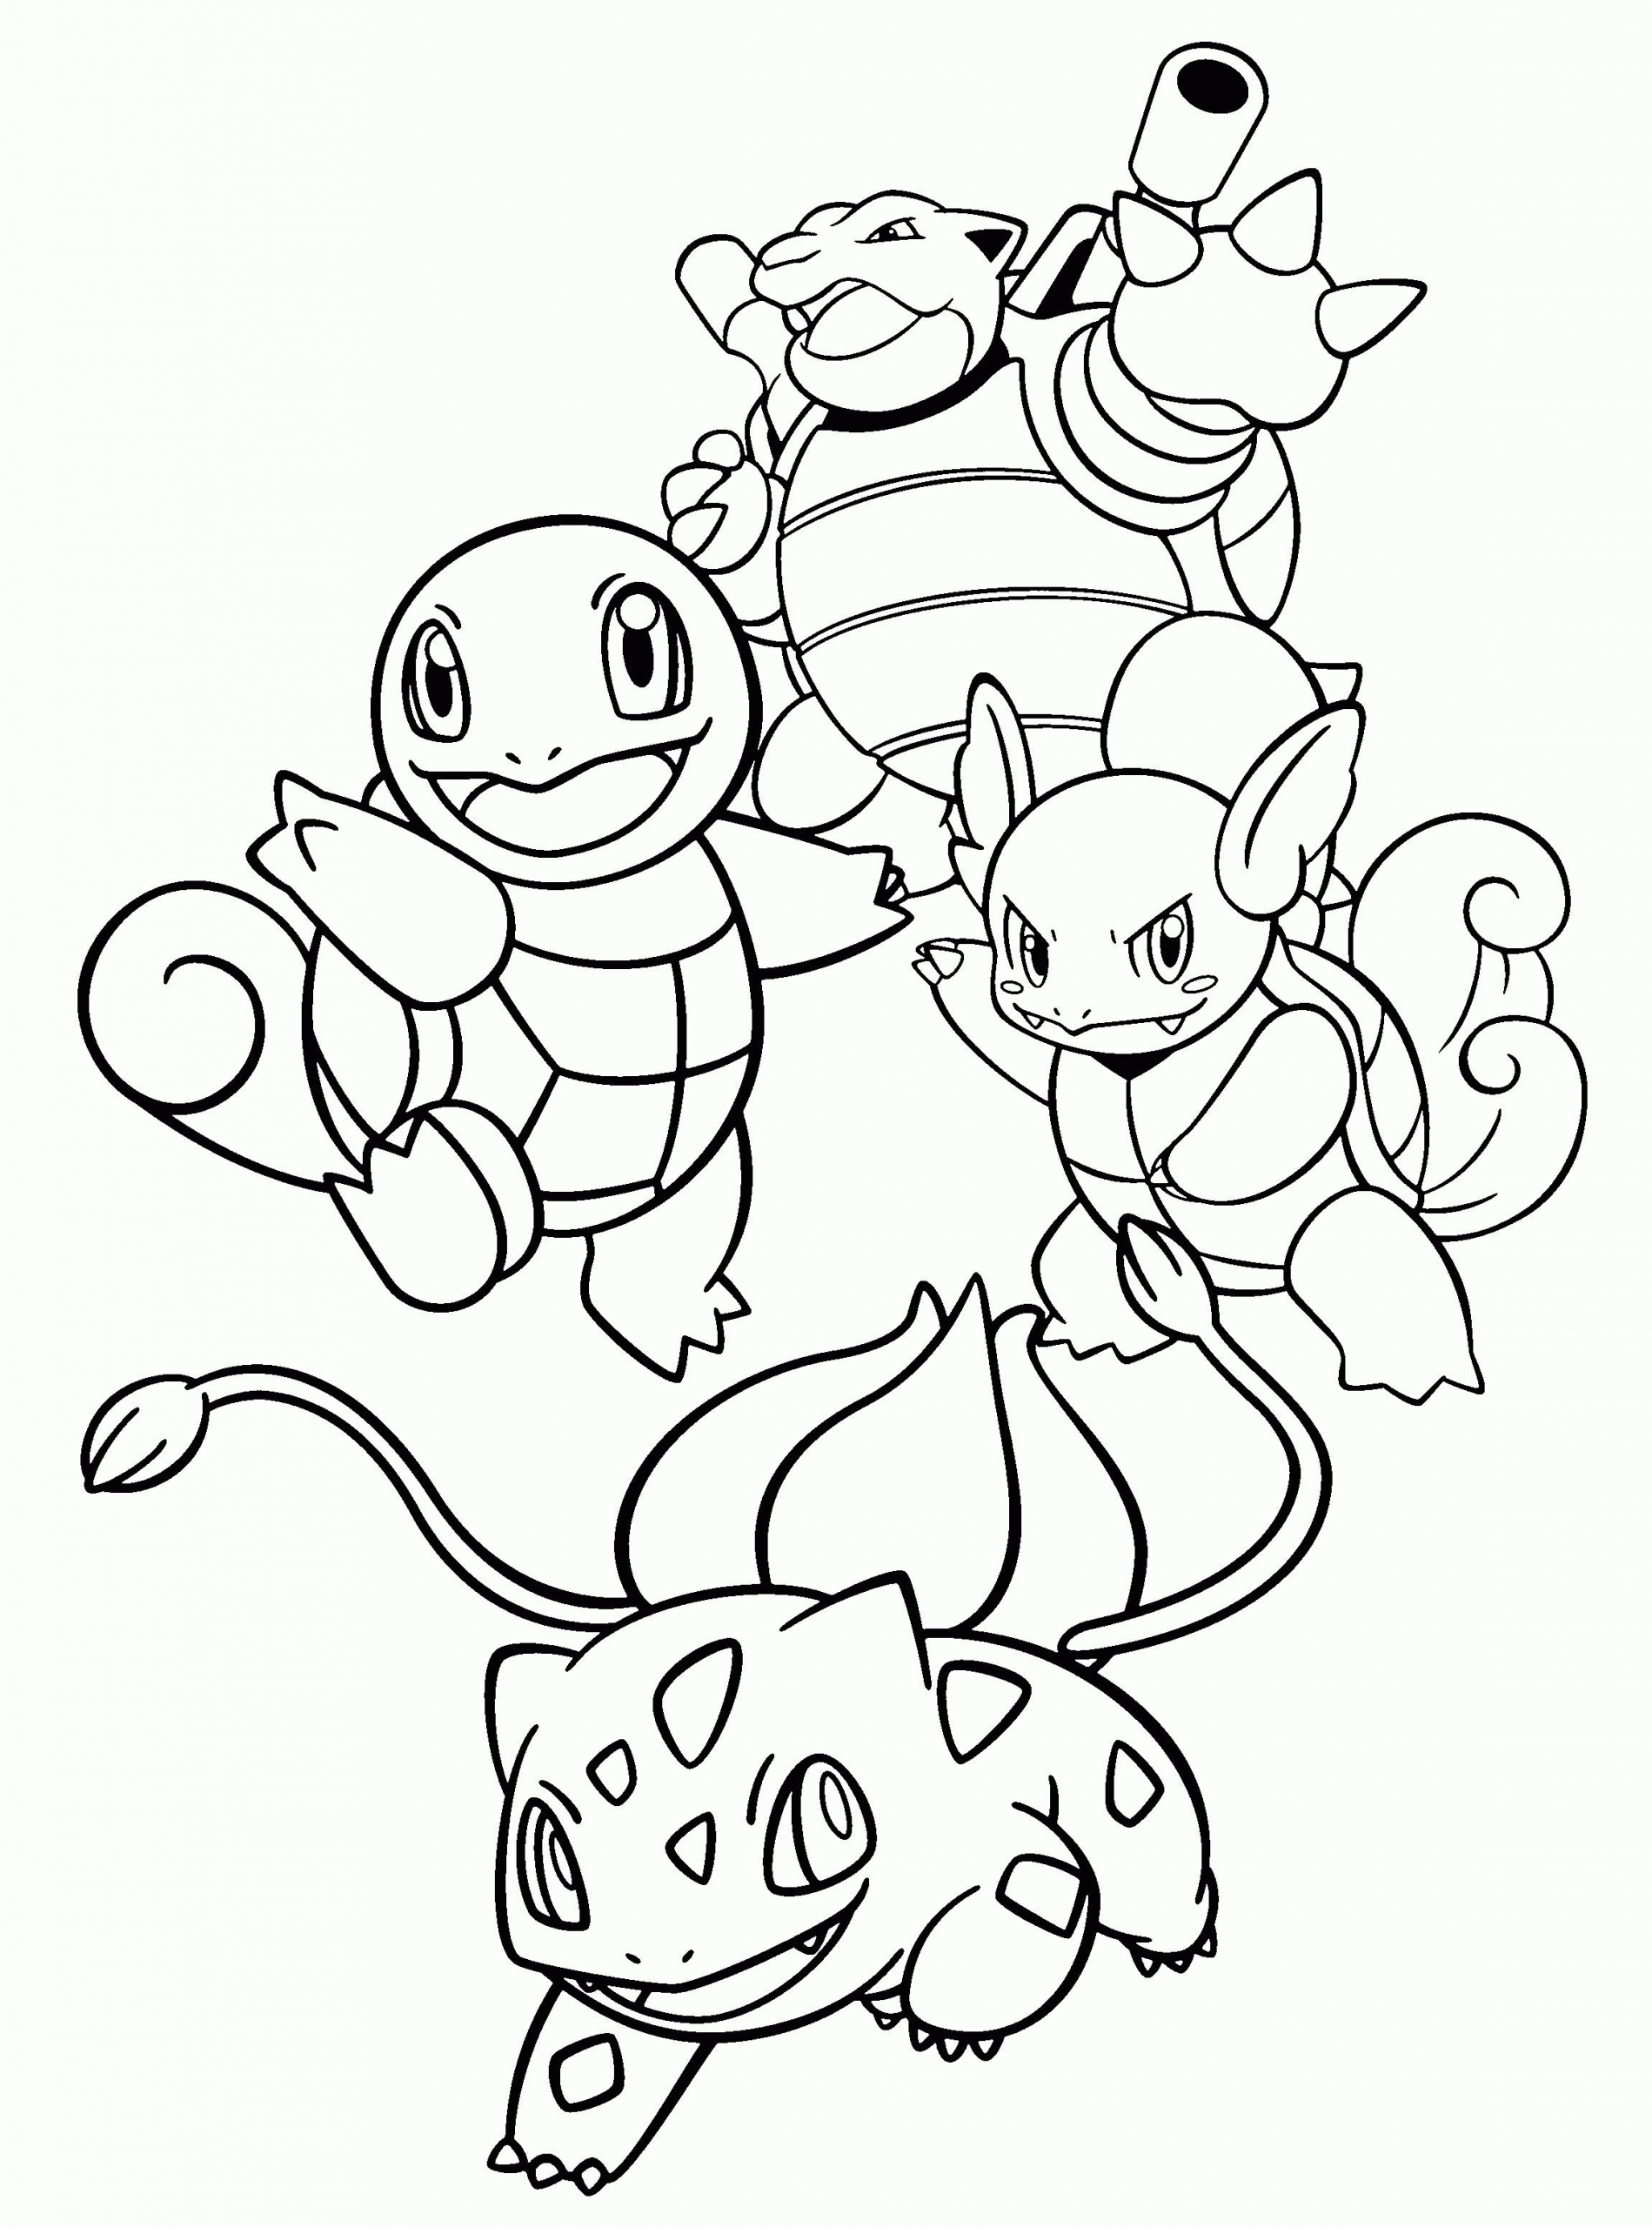 Squirtle Pokemon Coloring Page Youngandtae Com In 2020 Pokemon Coloring Pages Pokemon Coloring Pikachu Coloring Page